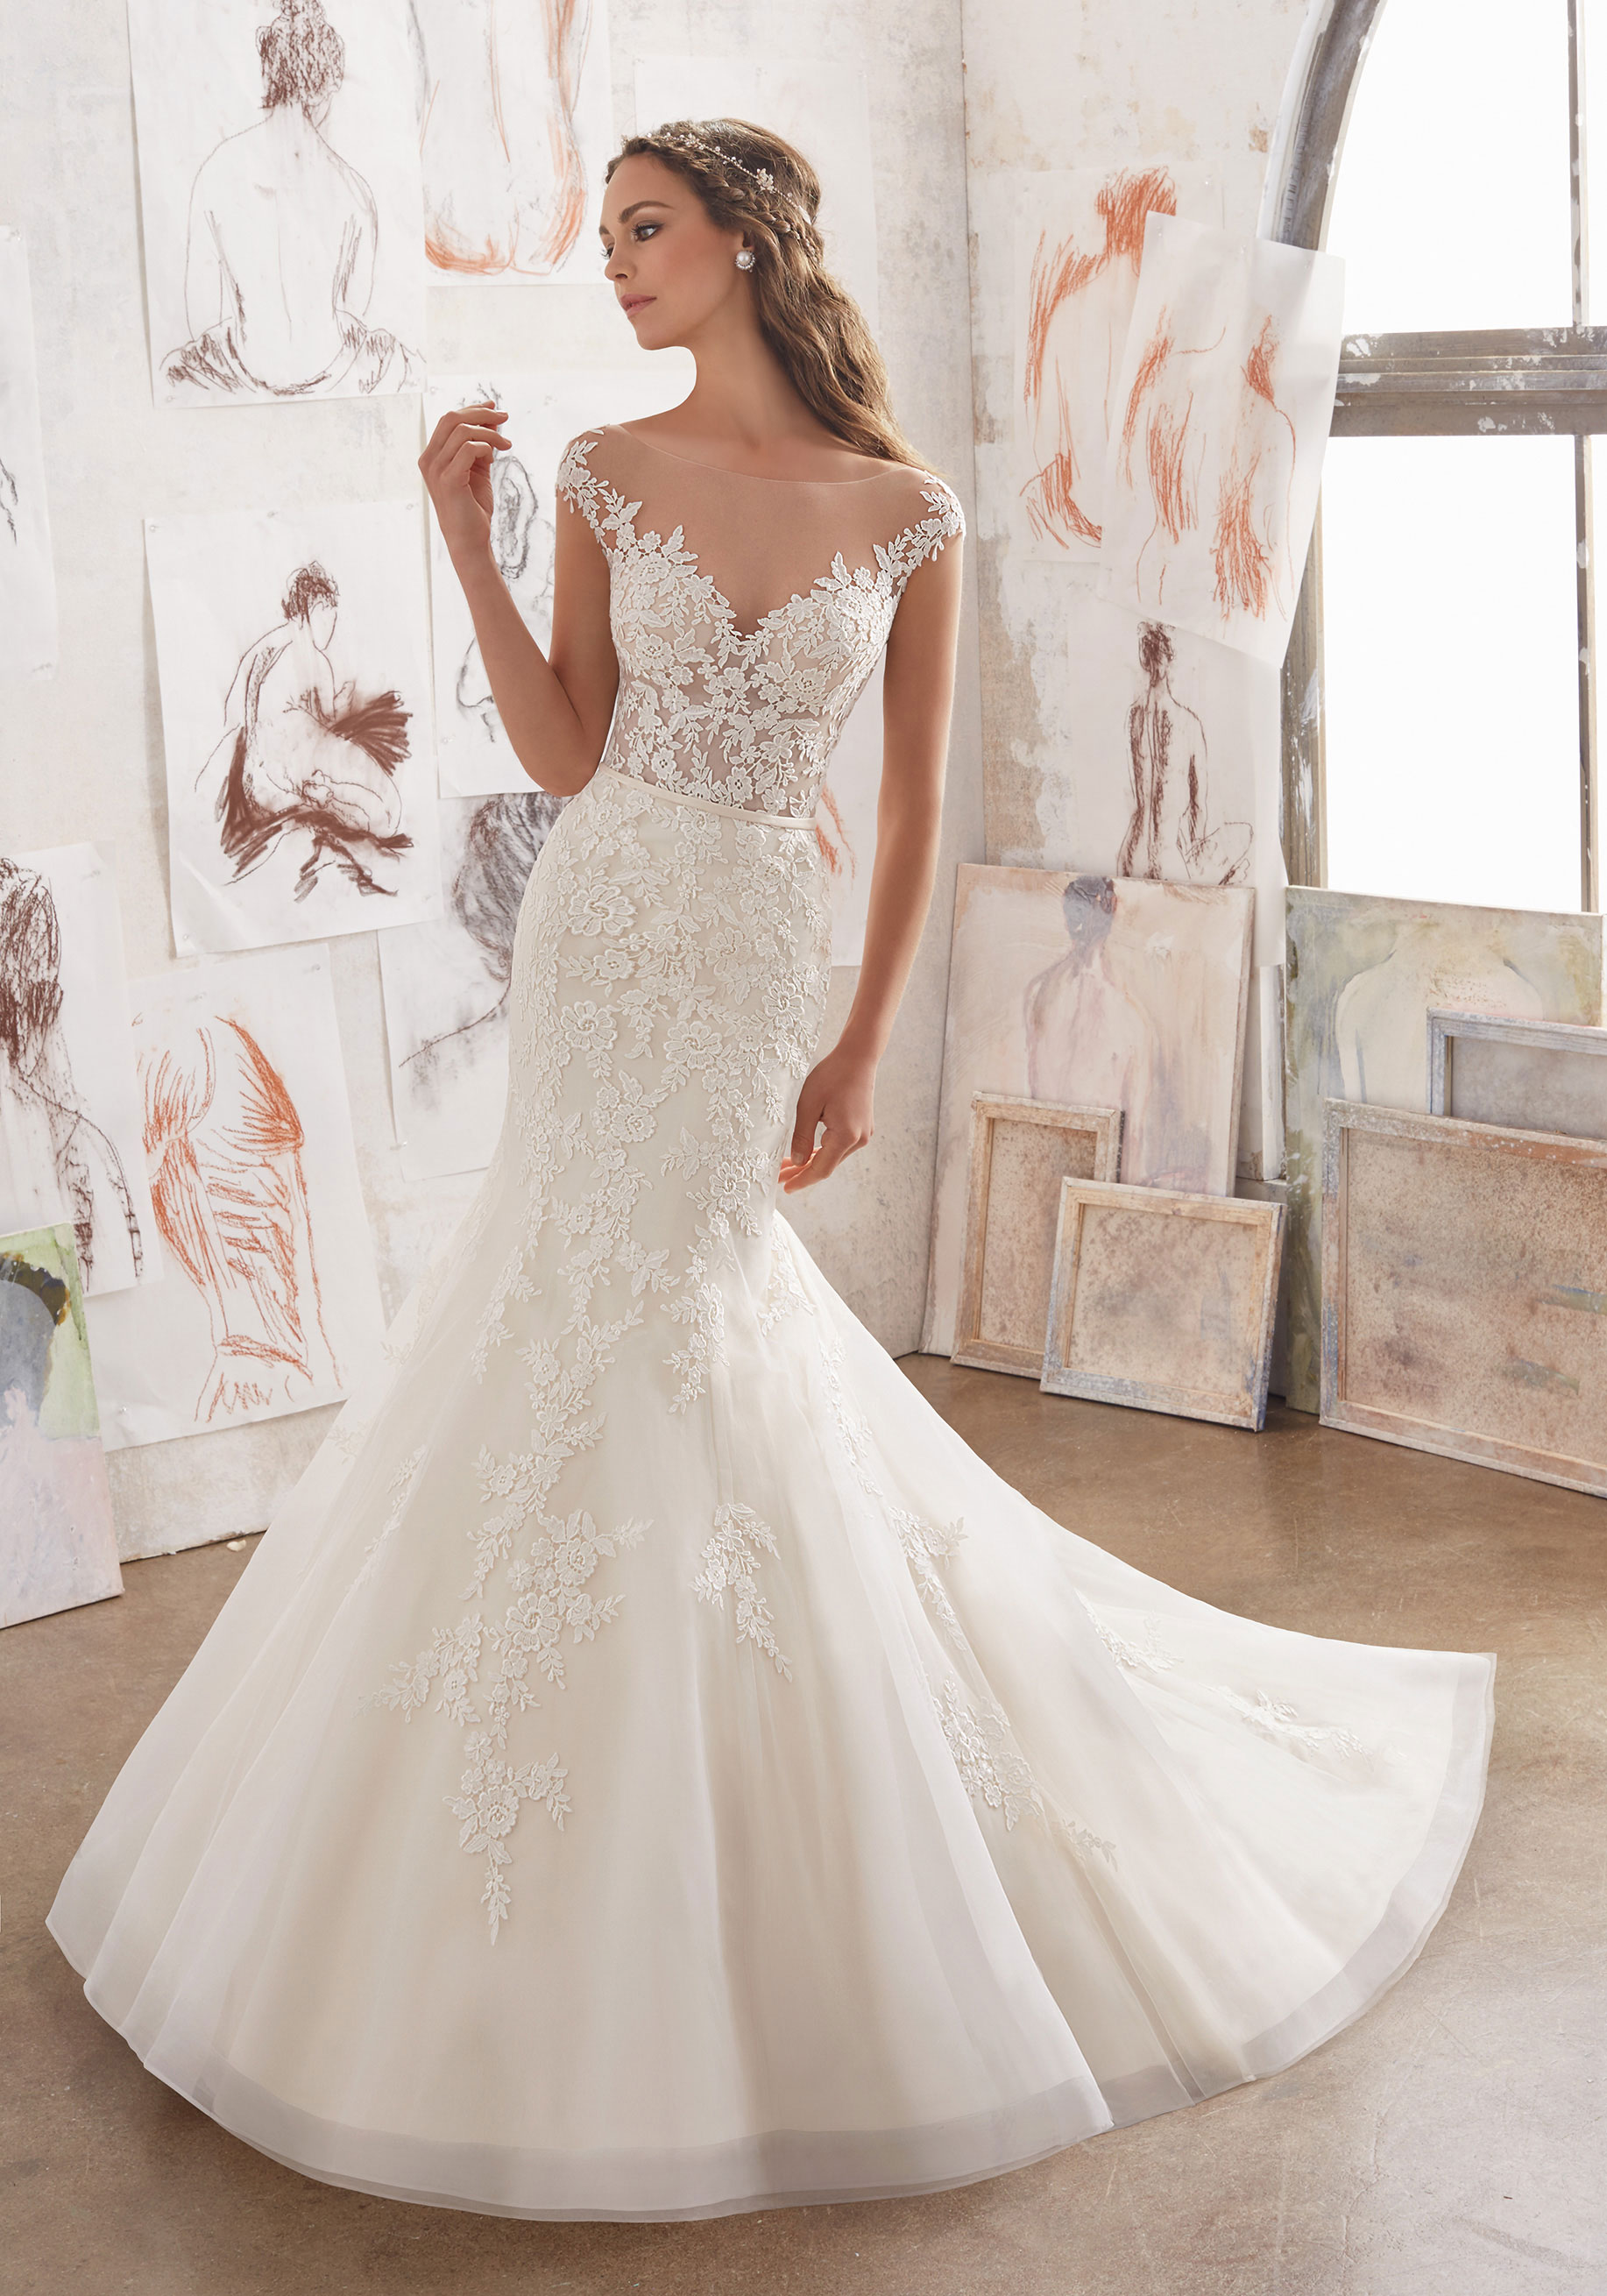 Mori Lee Blu 5509 Ivory // Retail Price $1209 | Our Price $845